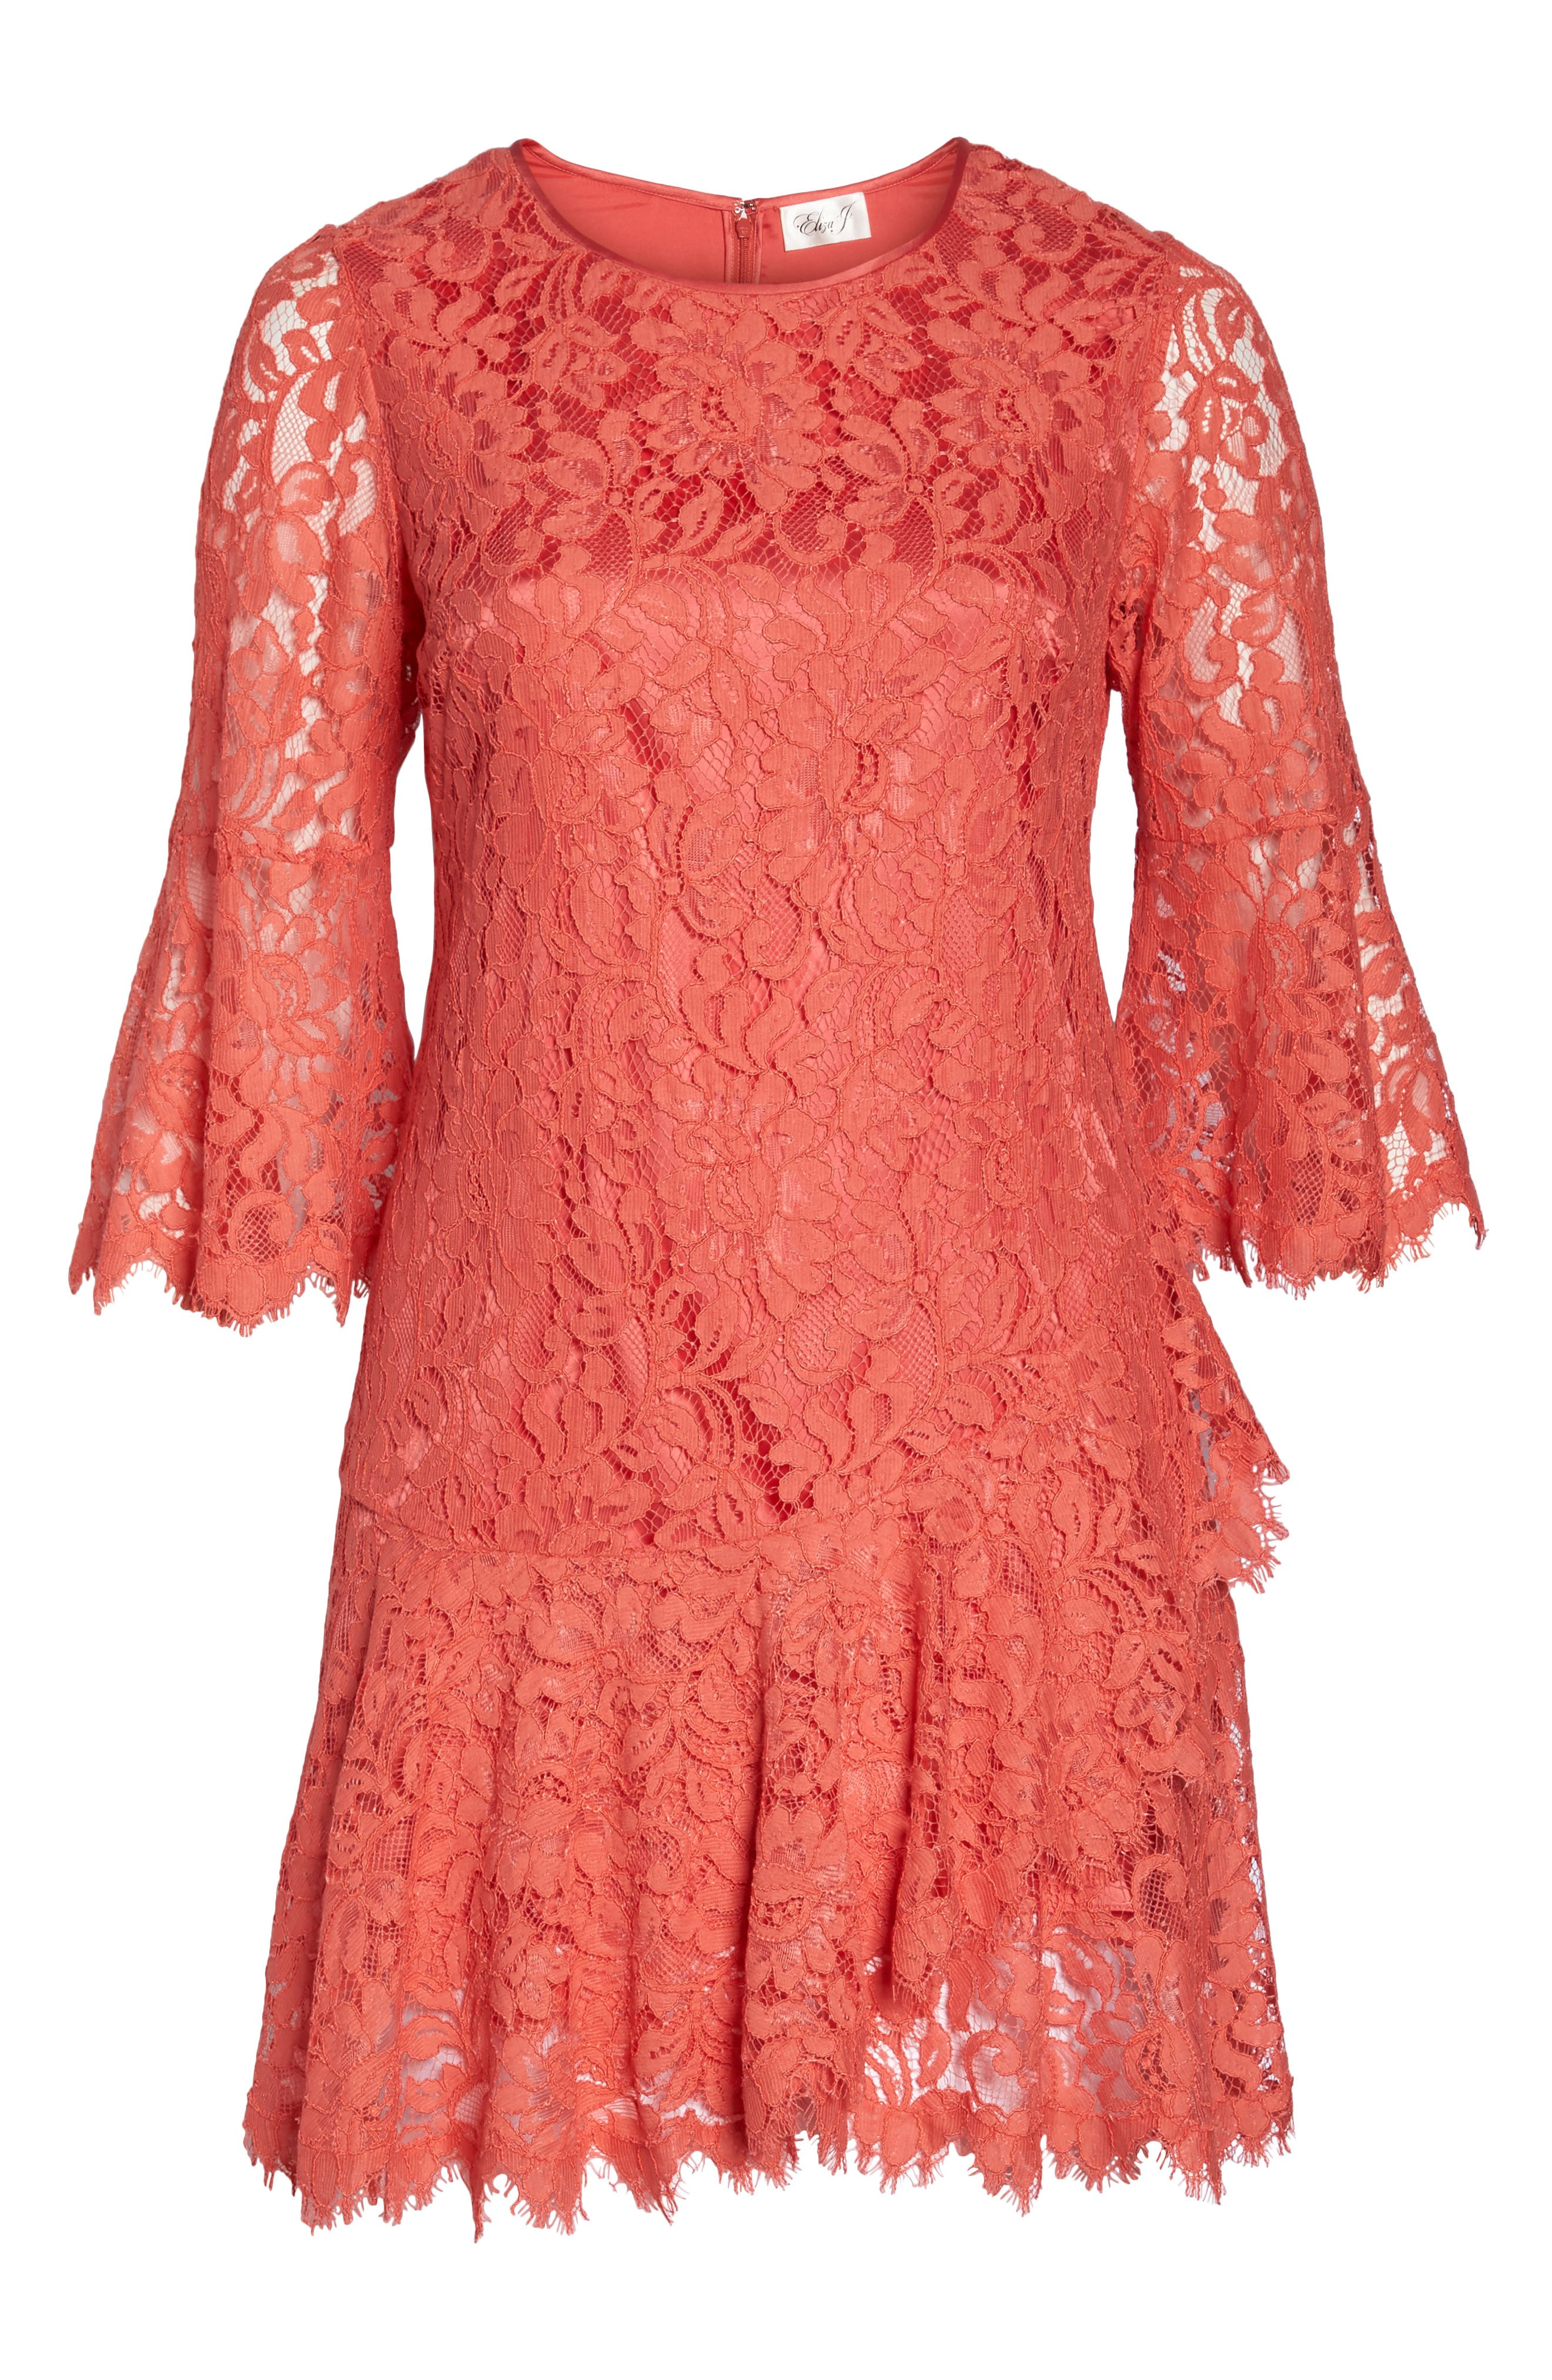 Bell Sleeve Lace Shift Dress,                             Alternate thumbnail 6, color,                             Coral